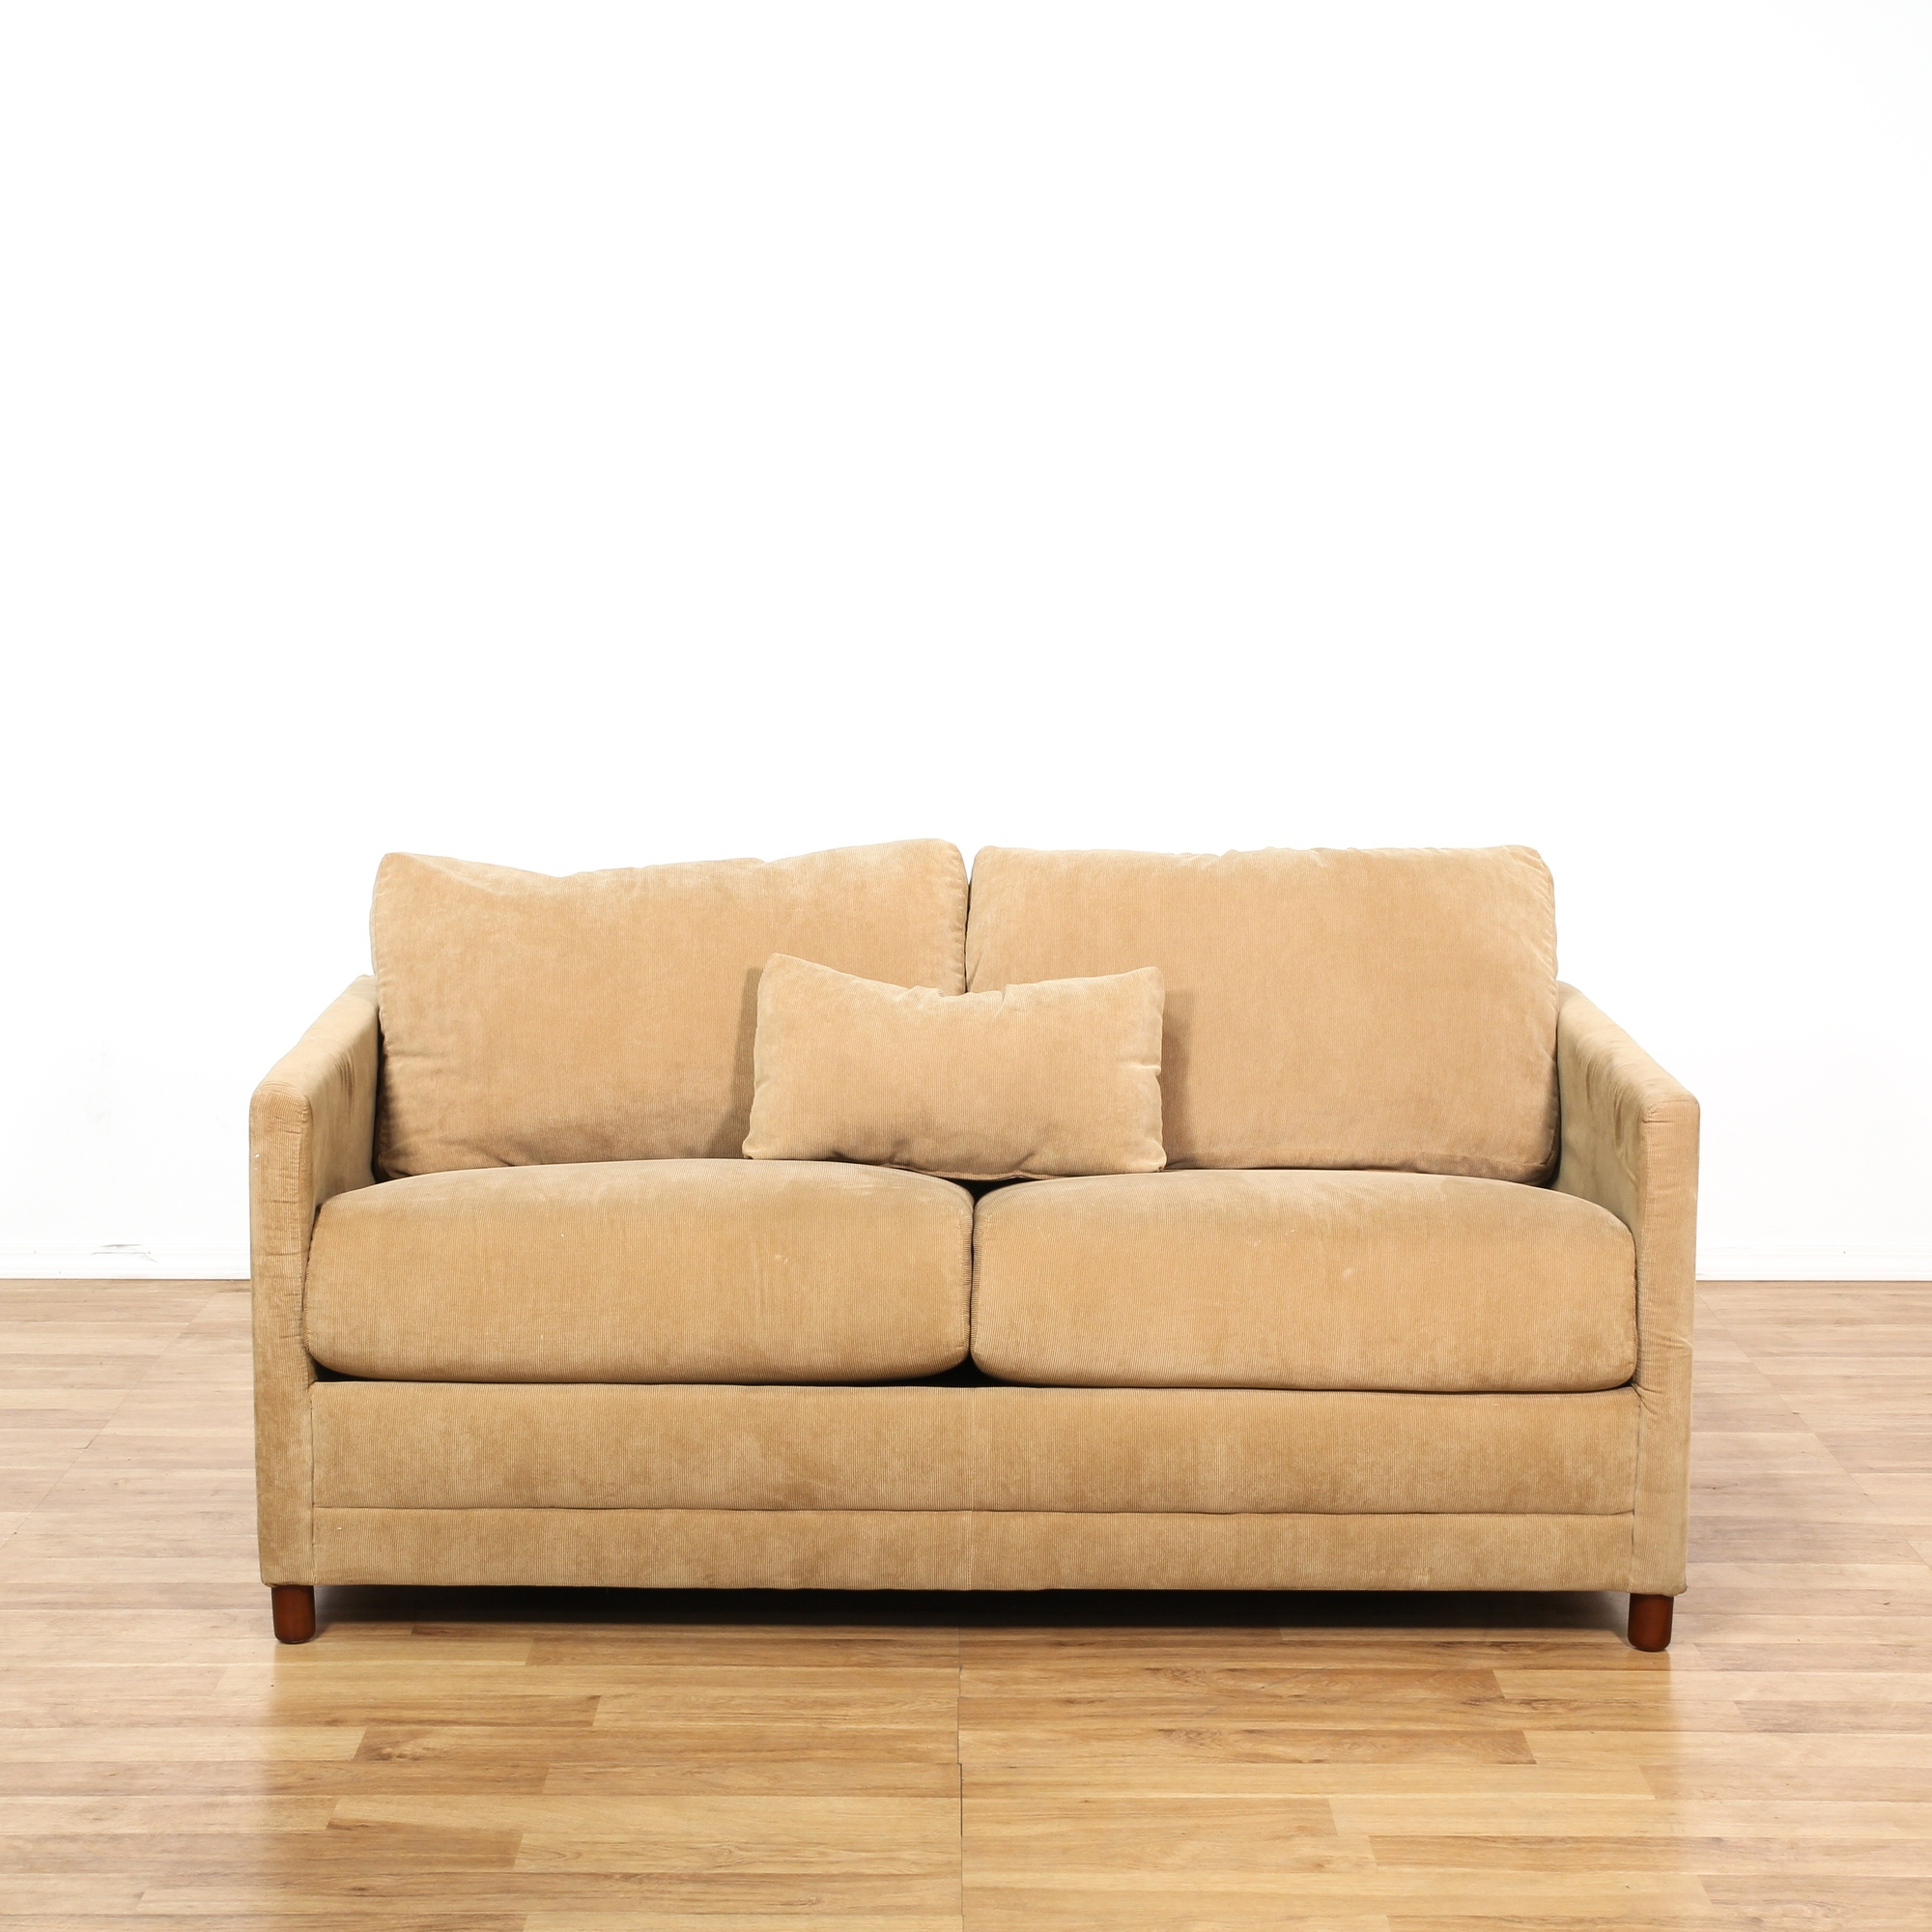 Quot Baker Quot Brown Corduroy Loveseat Sleeper Sofa Loveseat